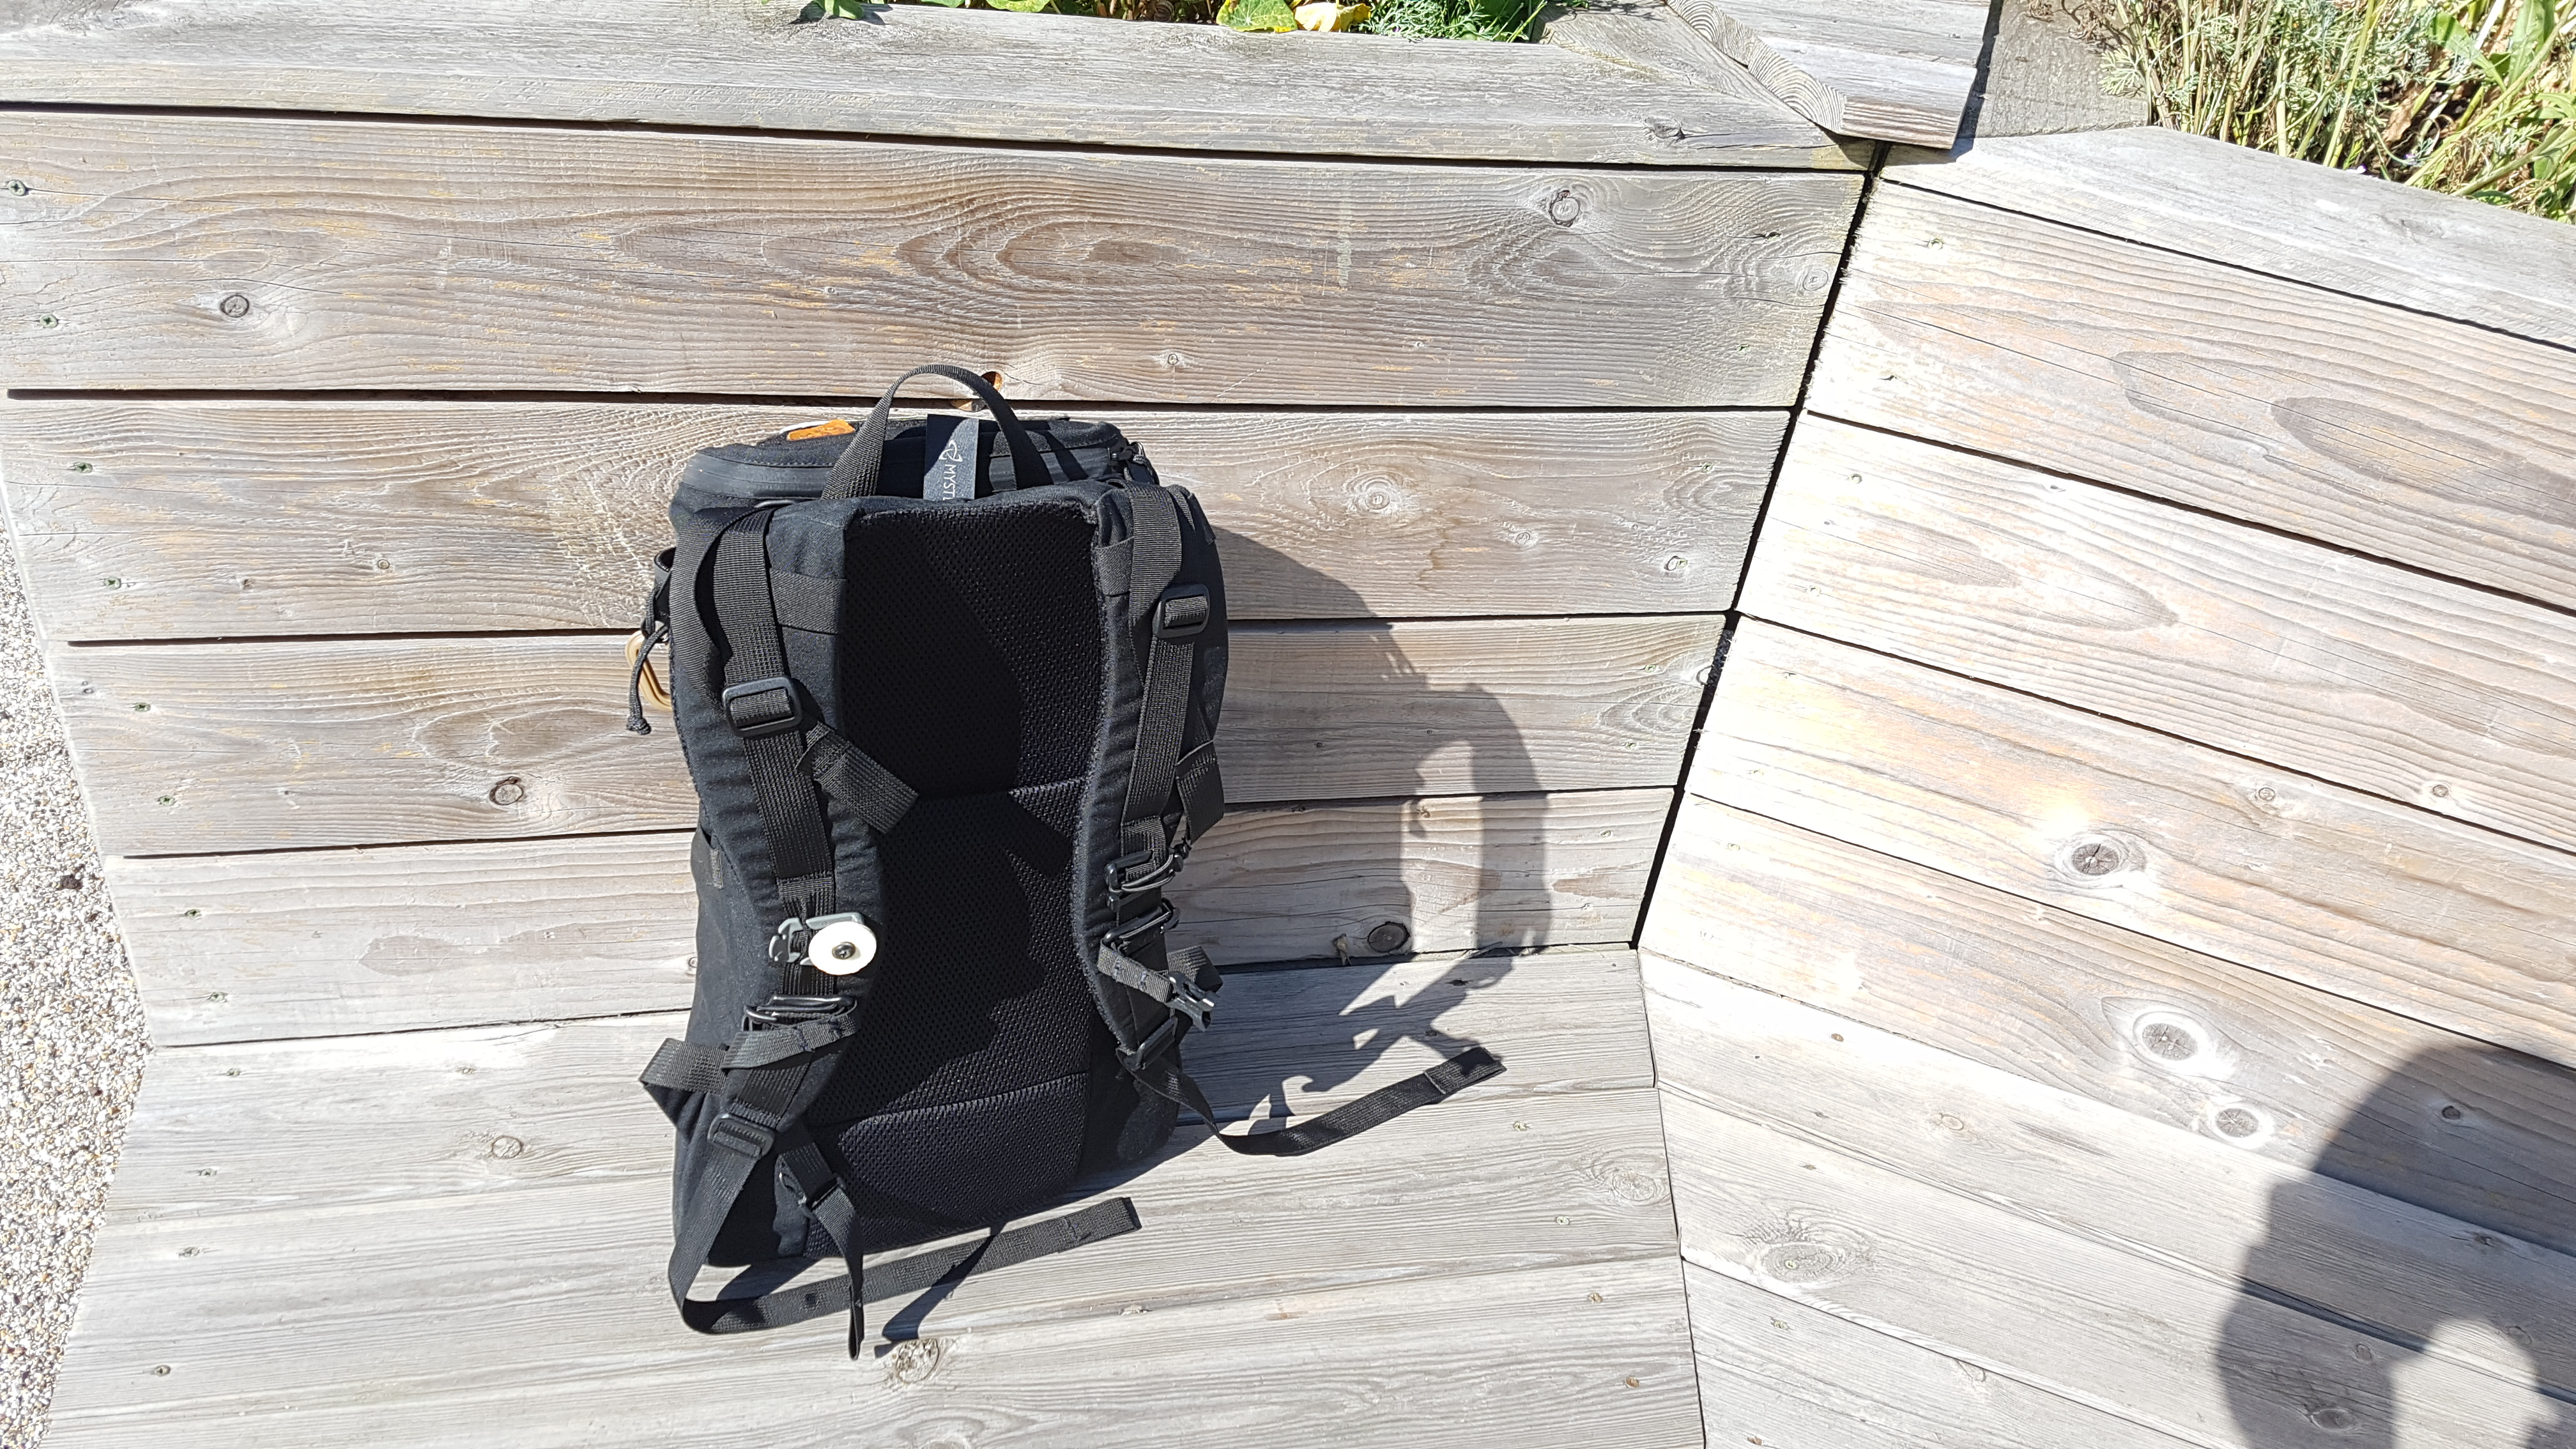 Mystery Ranch 1DAP backpack review 1 Day Assault Pack harness straps Futura Lite outdoors black cyflect marker